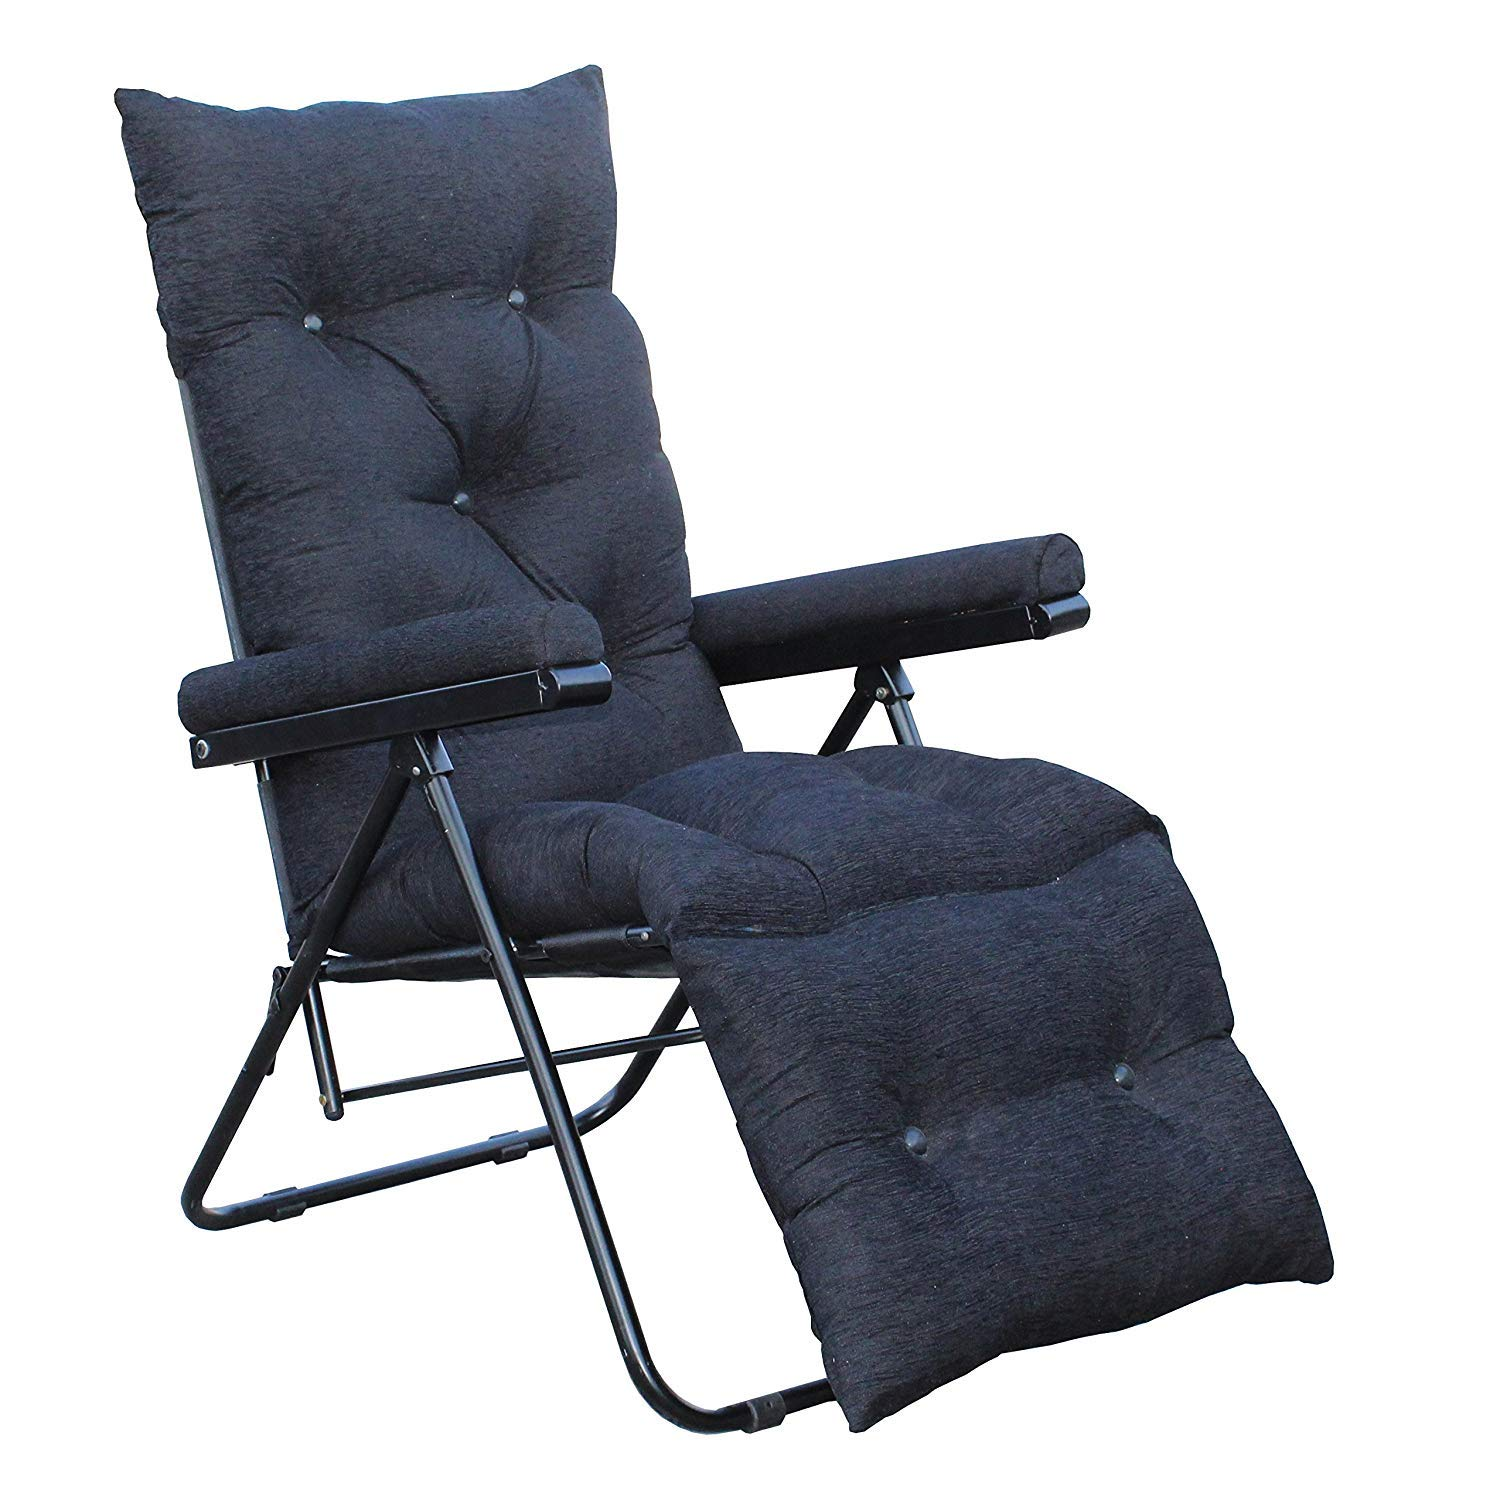 Spacecrafts Recliner Chair